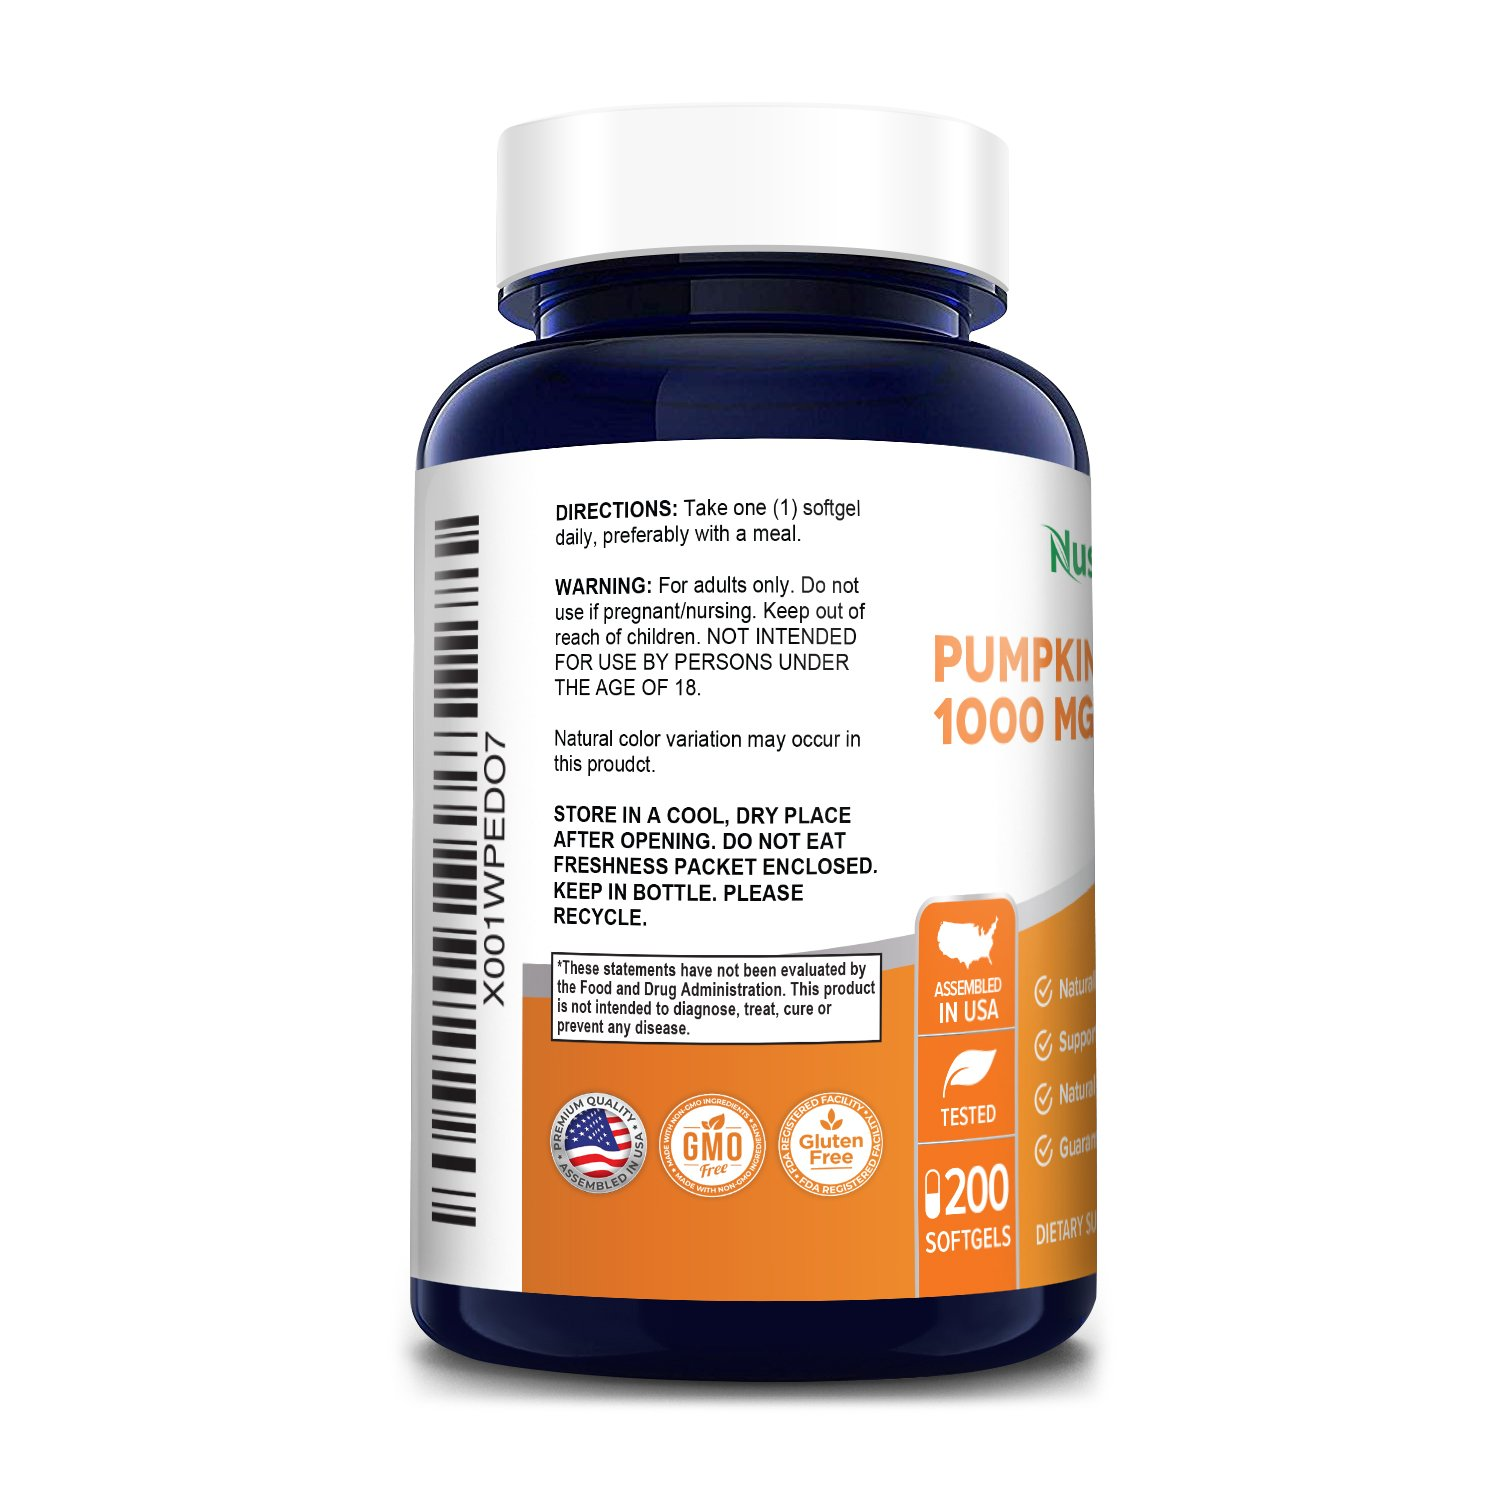 Pumpkin Seed Oil 1000mg 200 Softgel Capsules (Non-GMO, Gluten Free) Cold-Pressed - Fatty Acids - Great for Hair Growth, Prostate Health - Made in USA - 100% Money Back Guarantee!